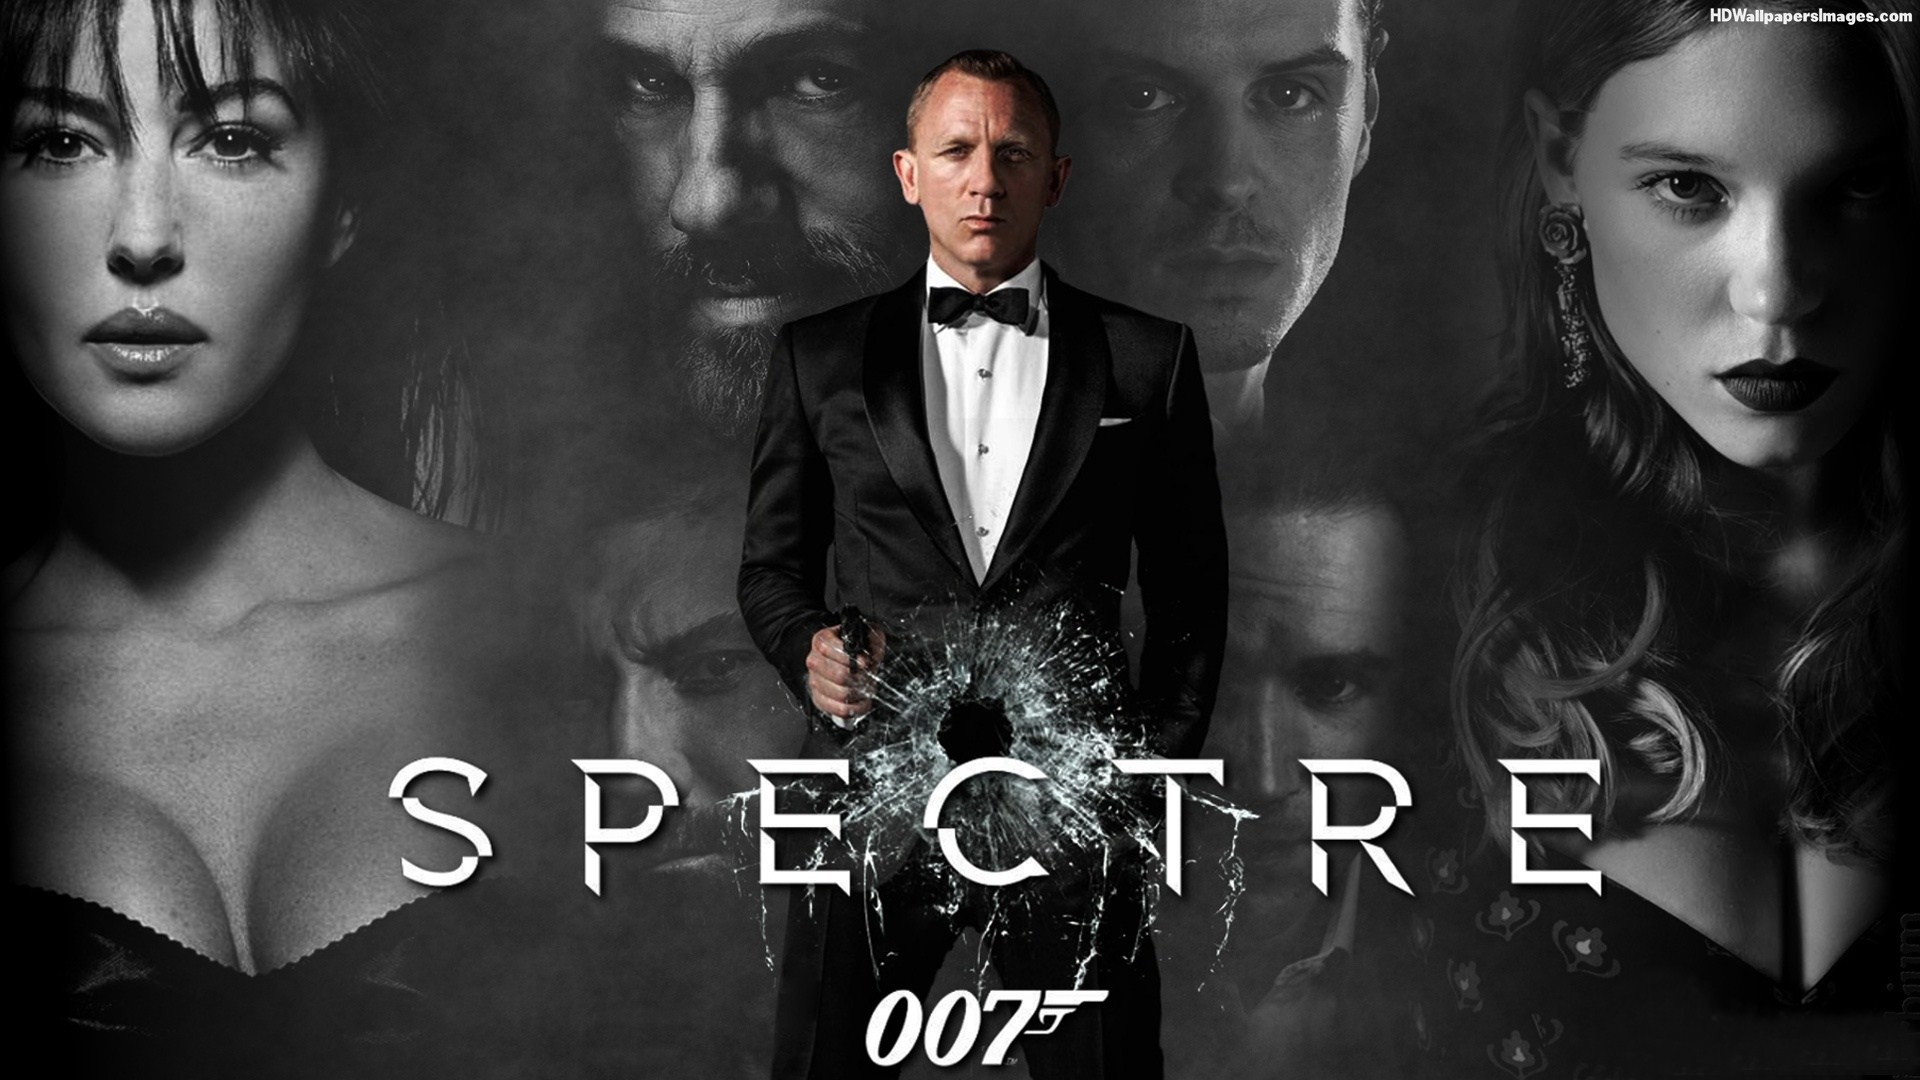 Images wallpapers of james bond in hd quality bsnscb gallery - James bond images hd ...